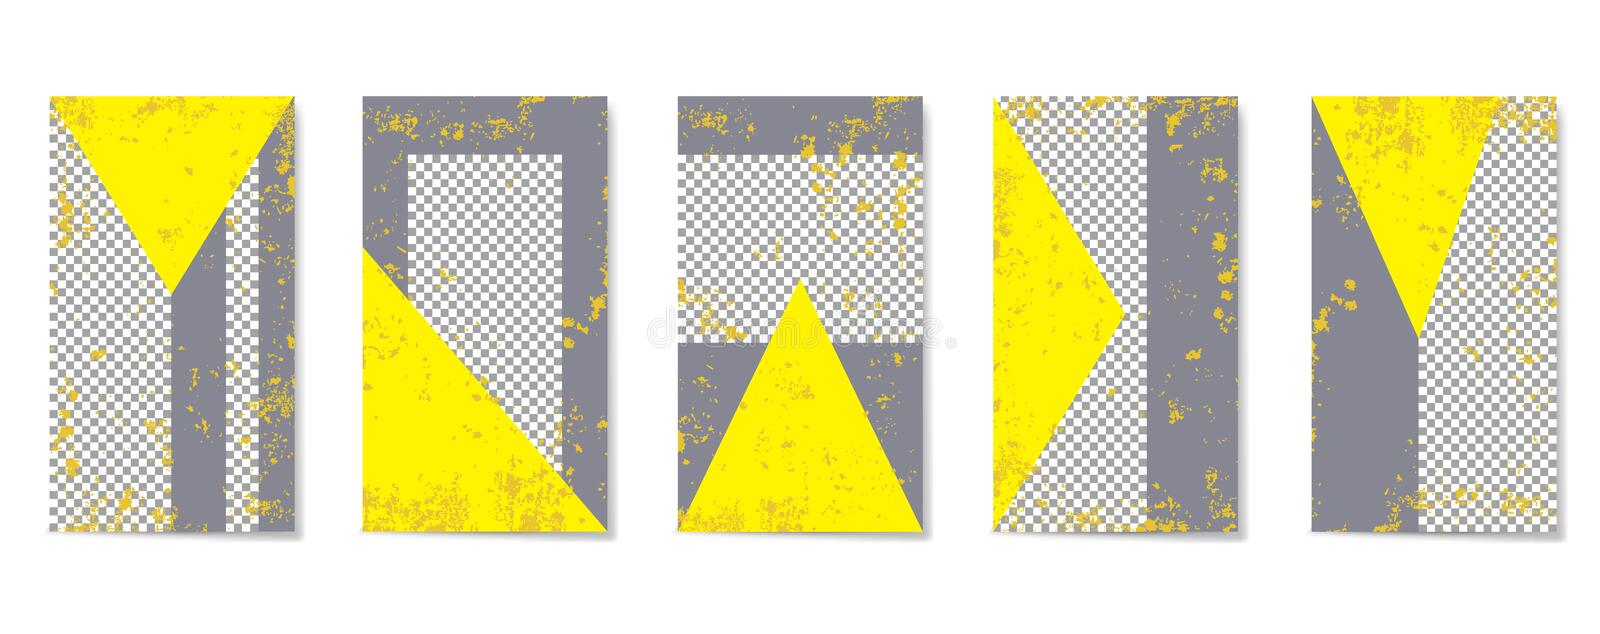 Flat geometric pattern in gray and yellow colors. royalty free stock image